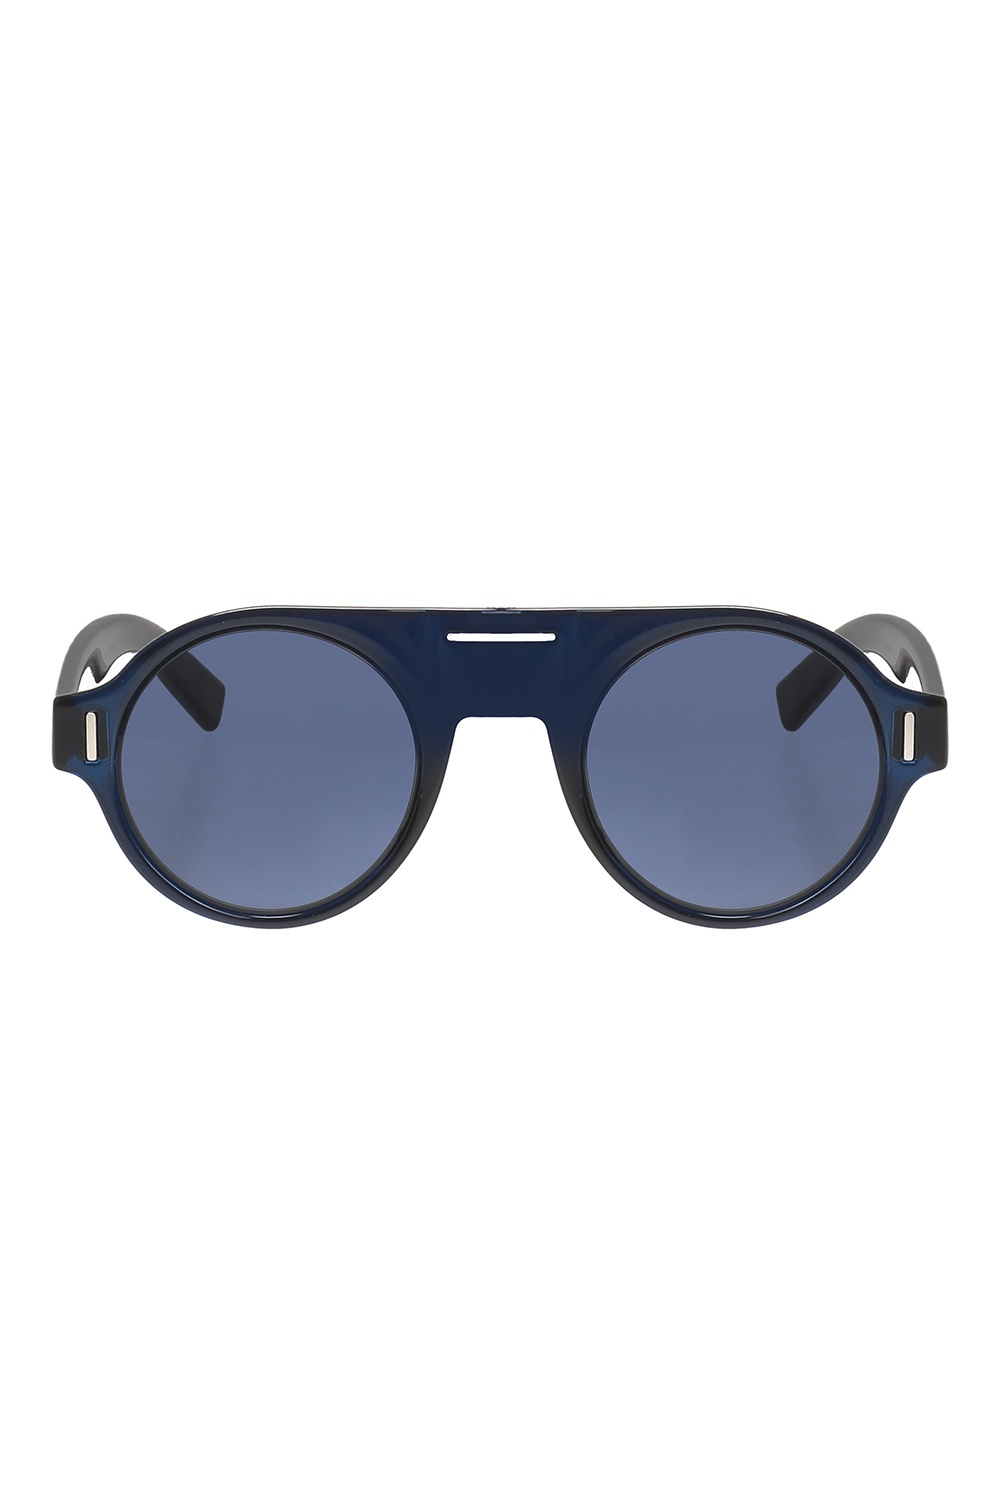 Dior 'Fraction 2' sunglasses